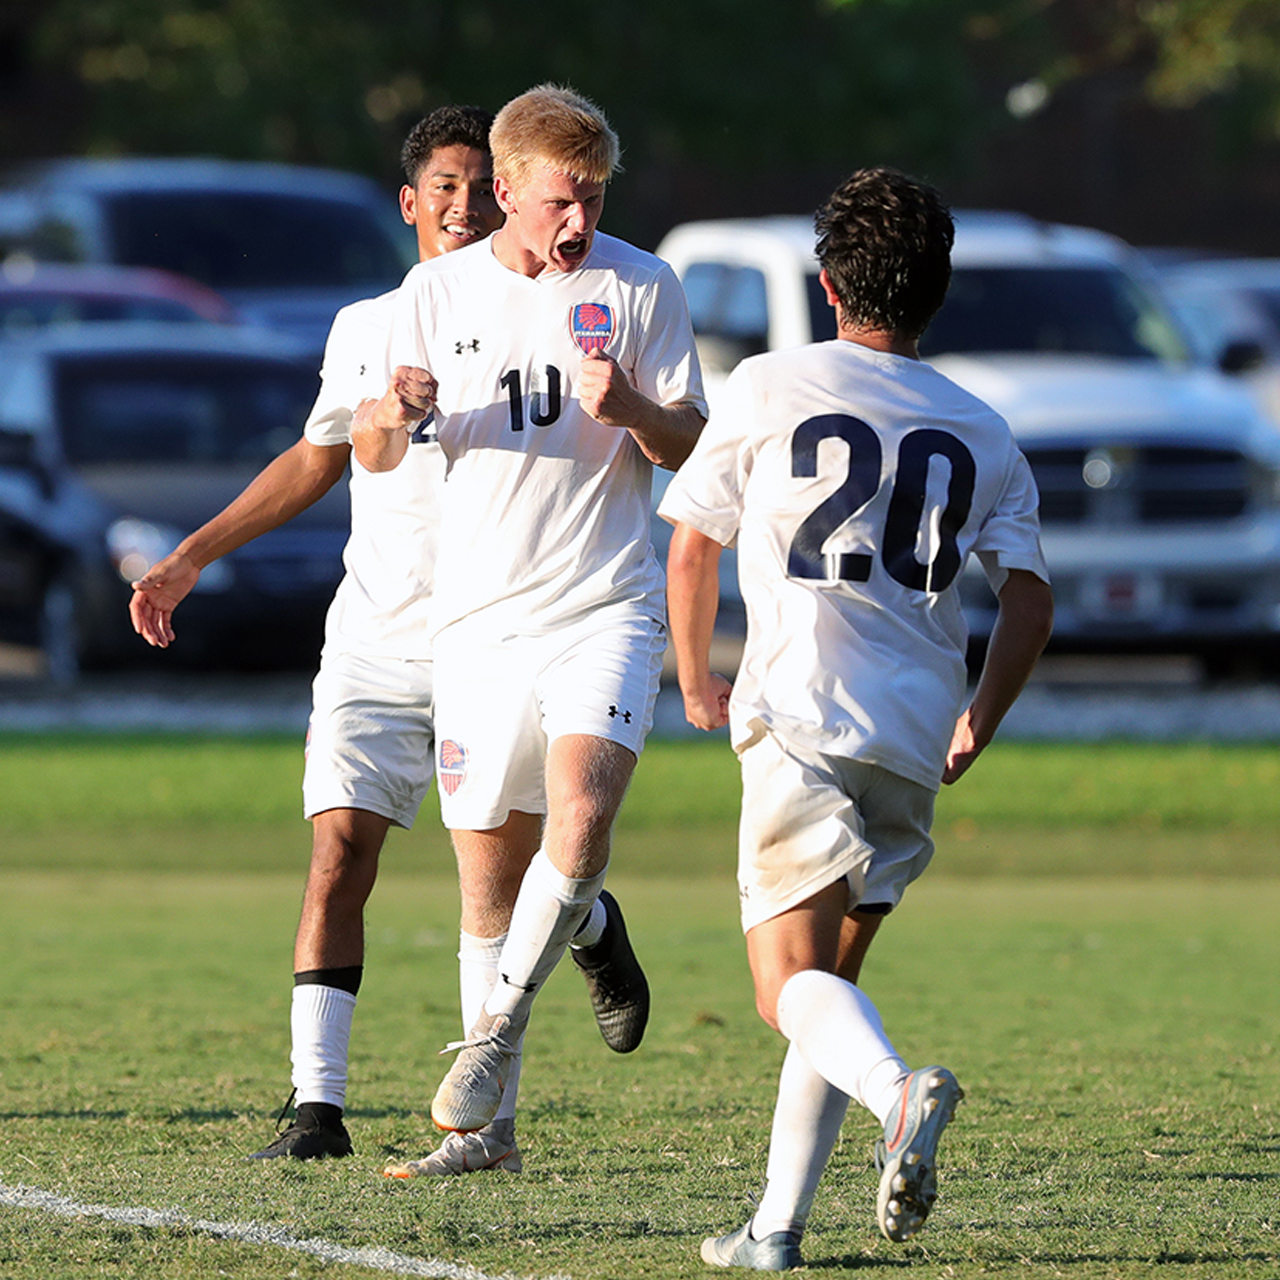 Indians score three unanswered goals to defeat Hinds 3-2